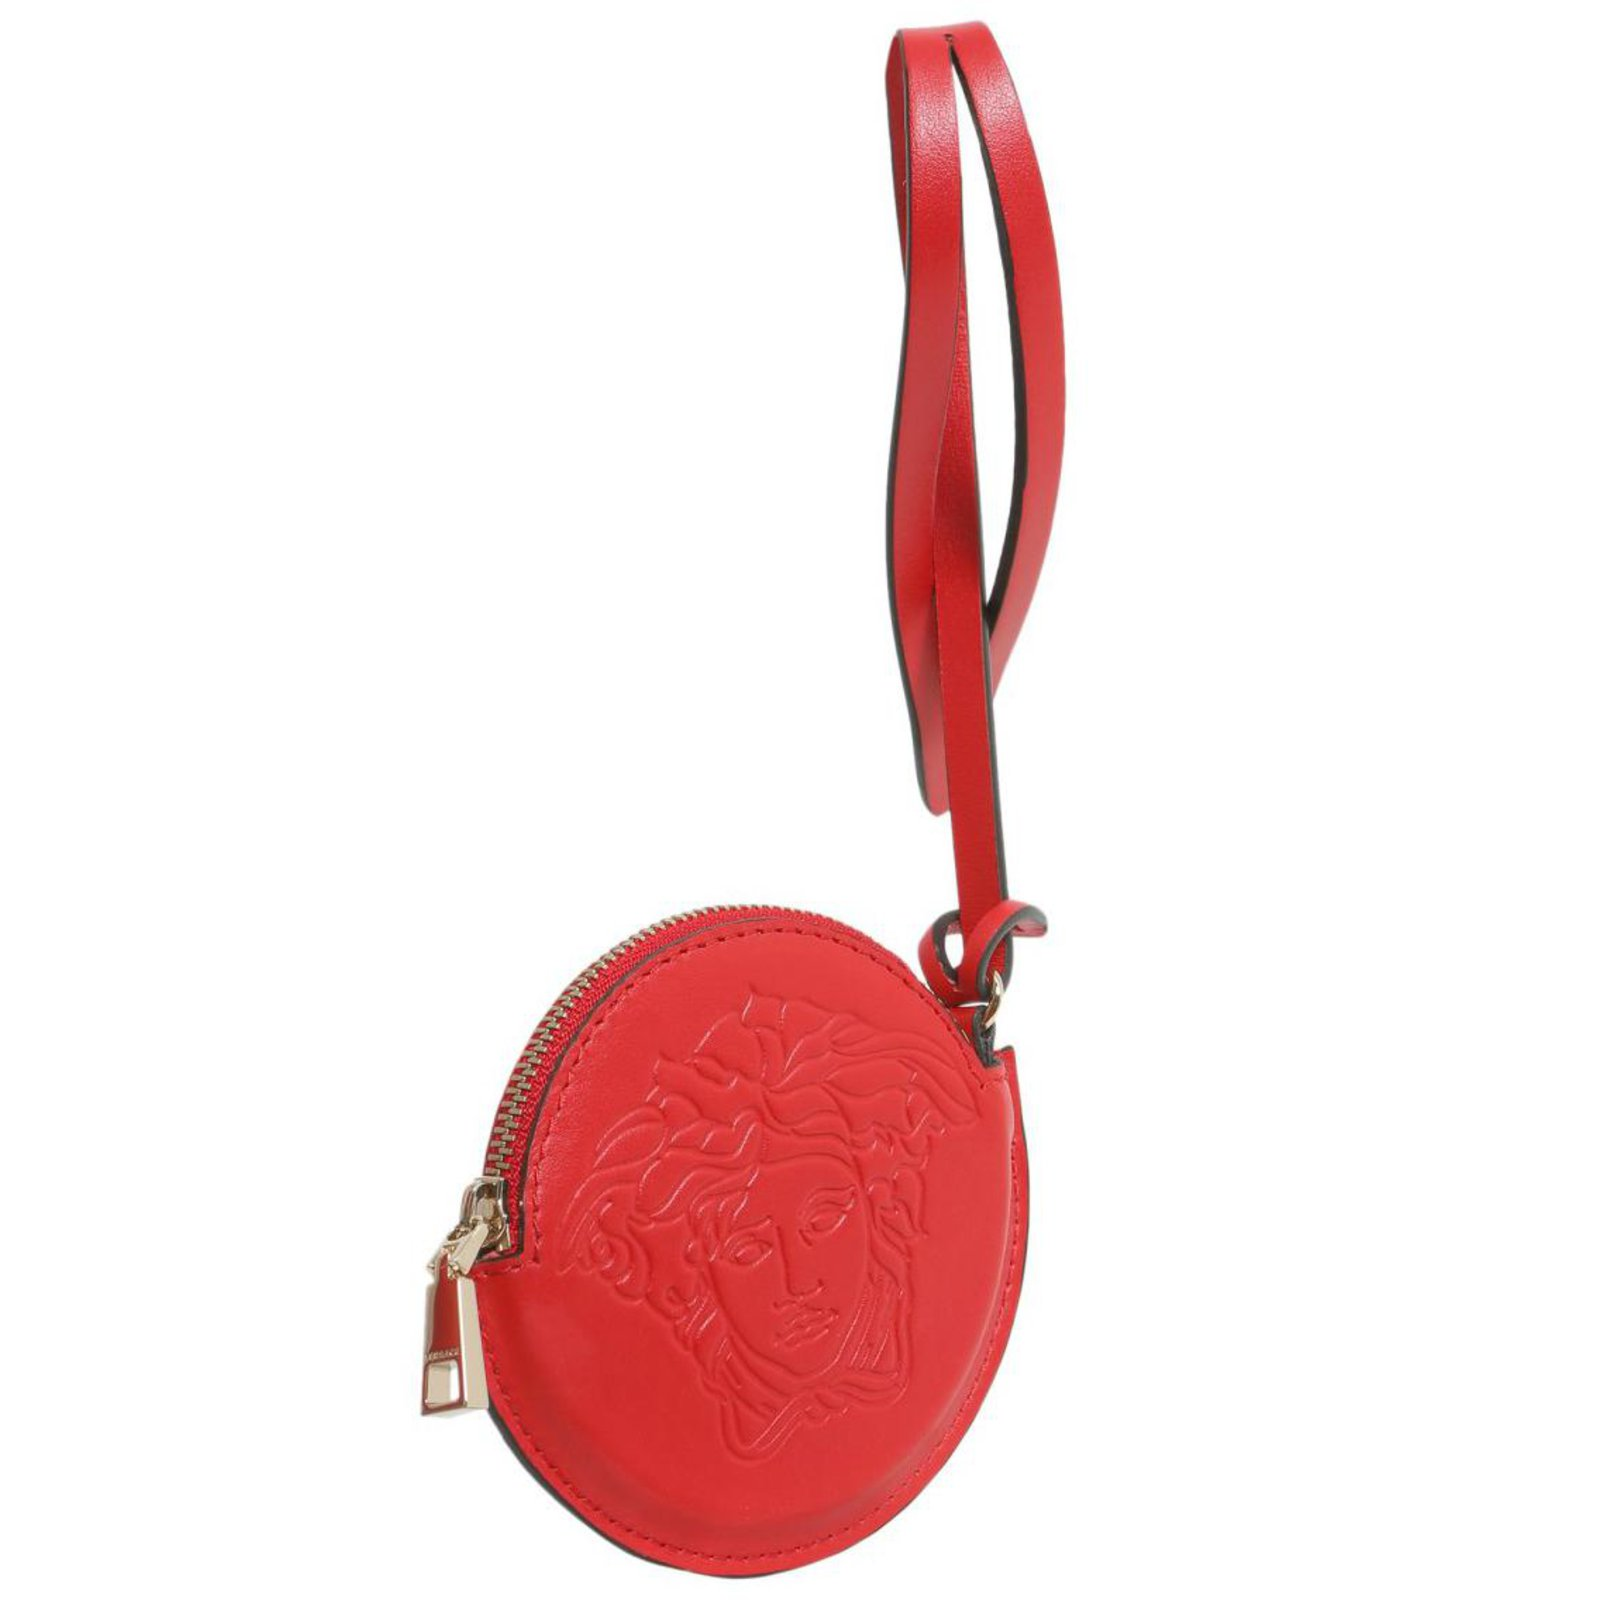 6449ba9cd24 Versace Versace leather medusa head charm Bag charms Leather Red ref.83533  - Joli Closet